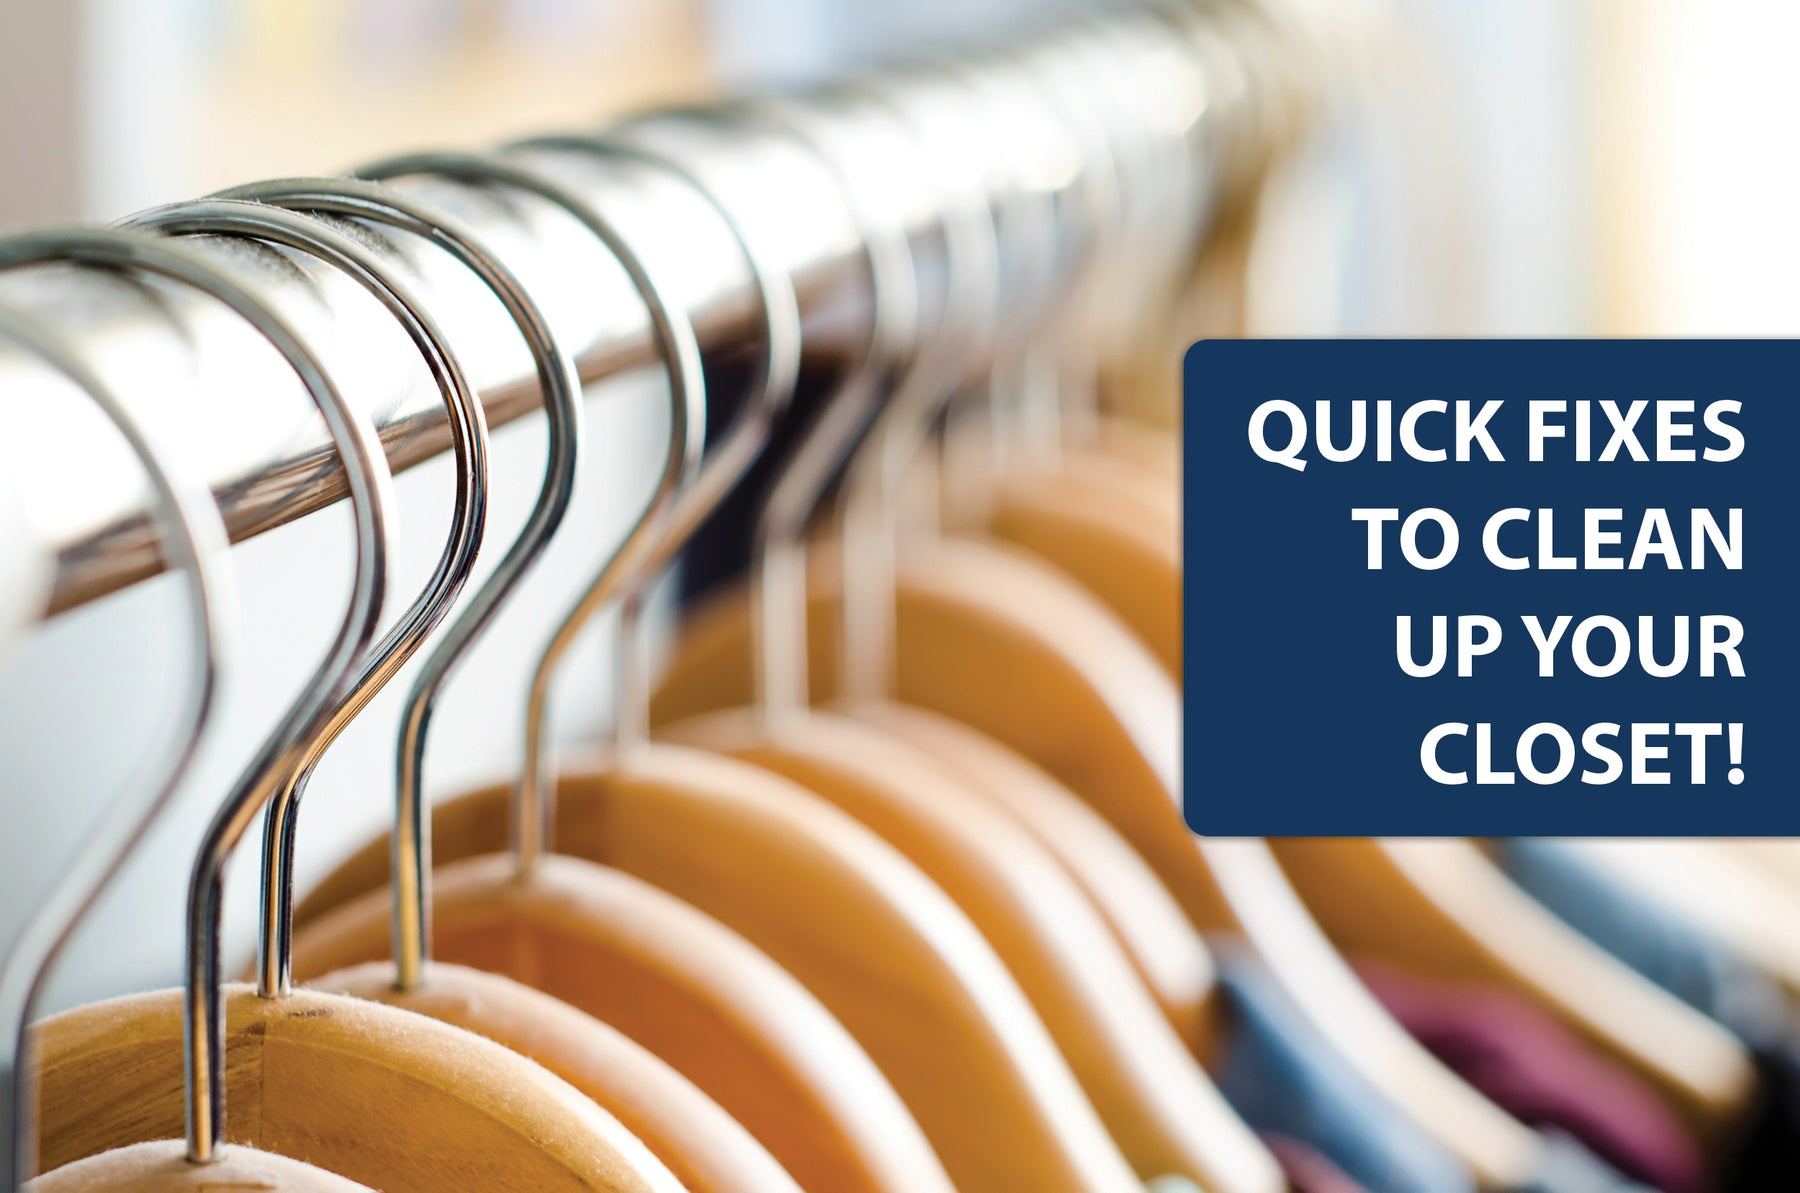 Clean Up Your Closet With These Quick Fixes!